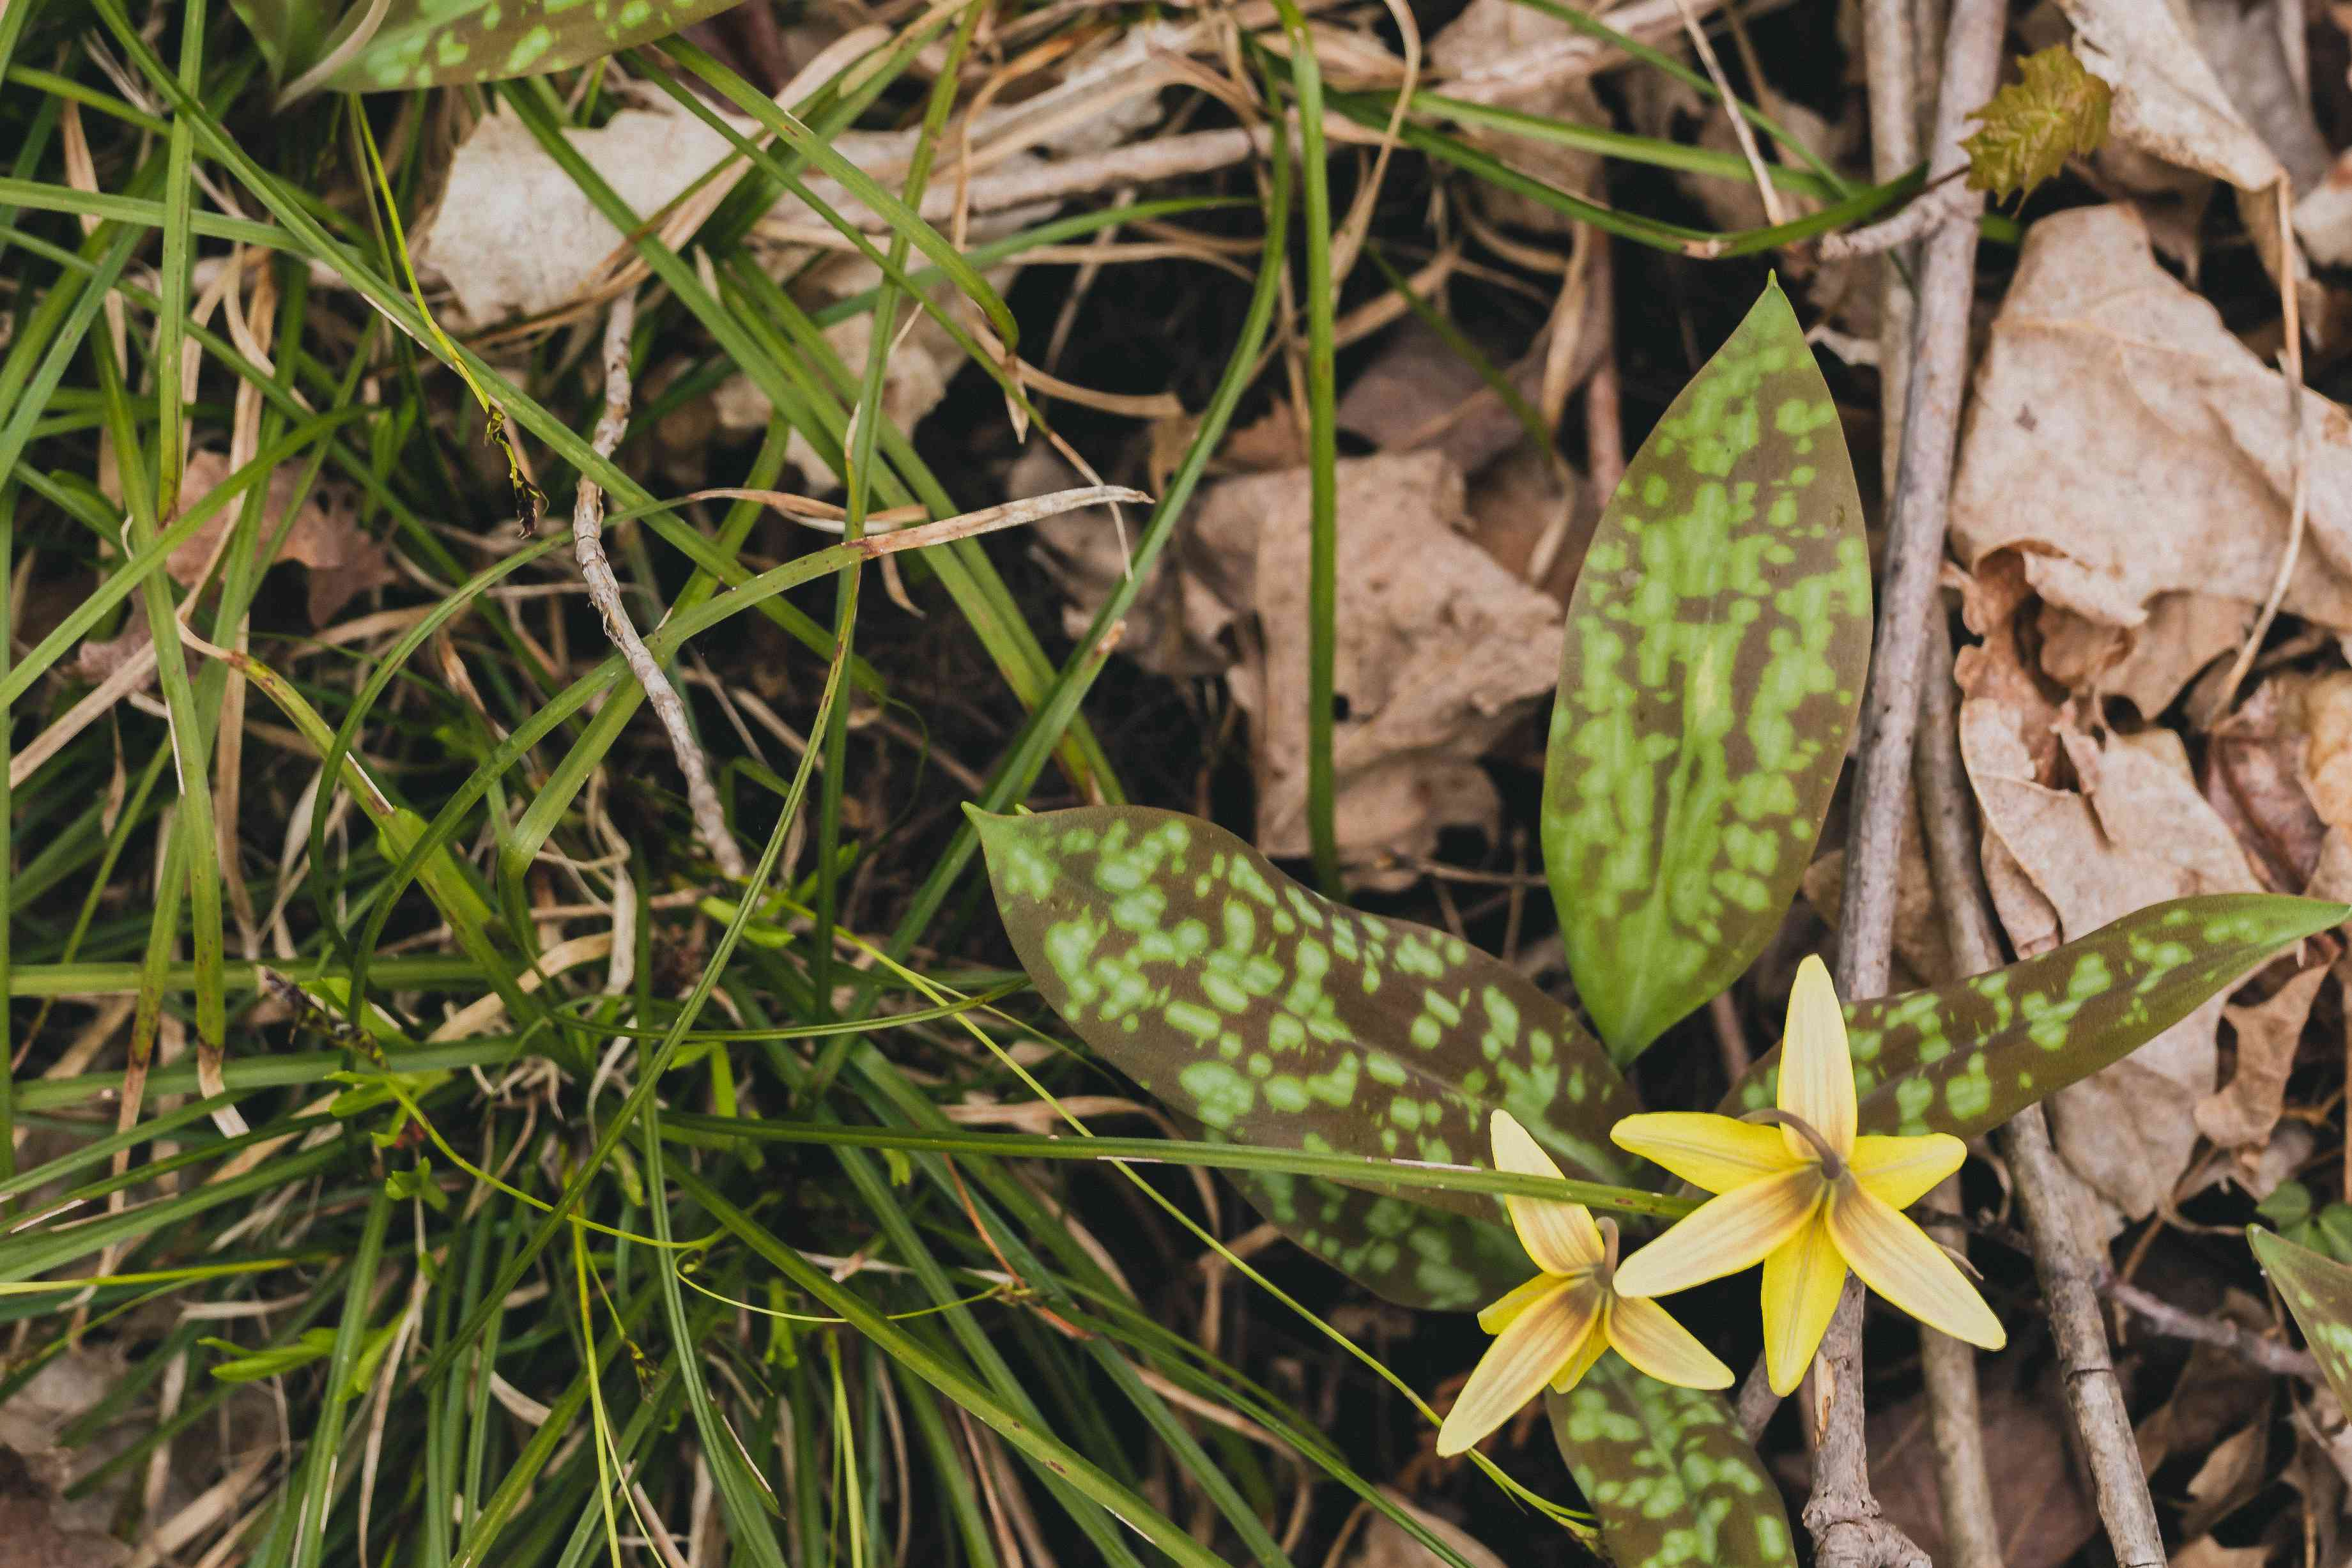 Trout lily plant with black spotted leaves with small yellow flowers in between leaves and grass blades